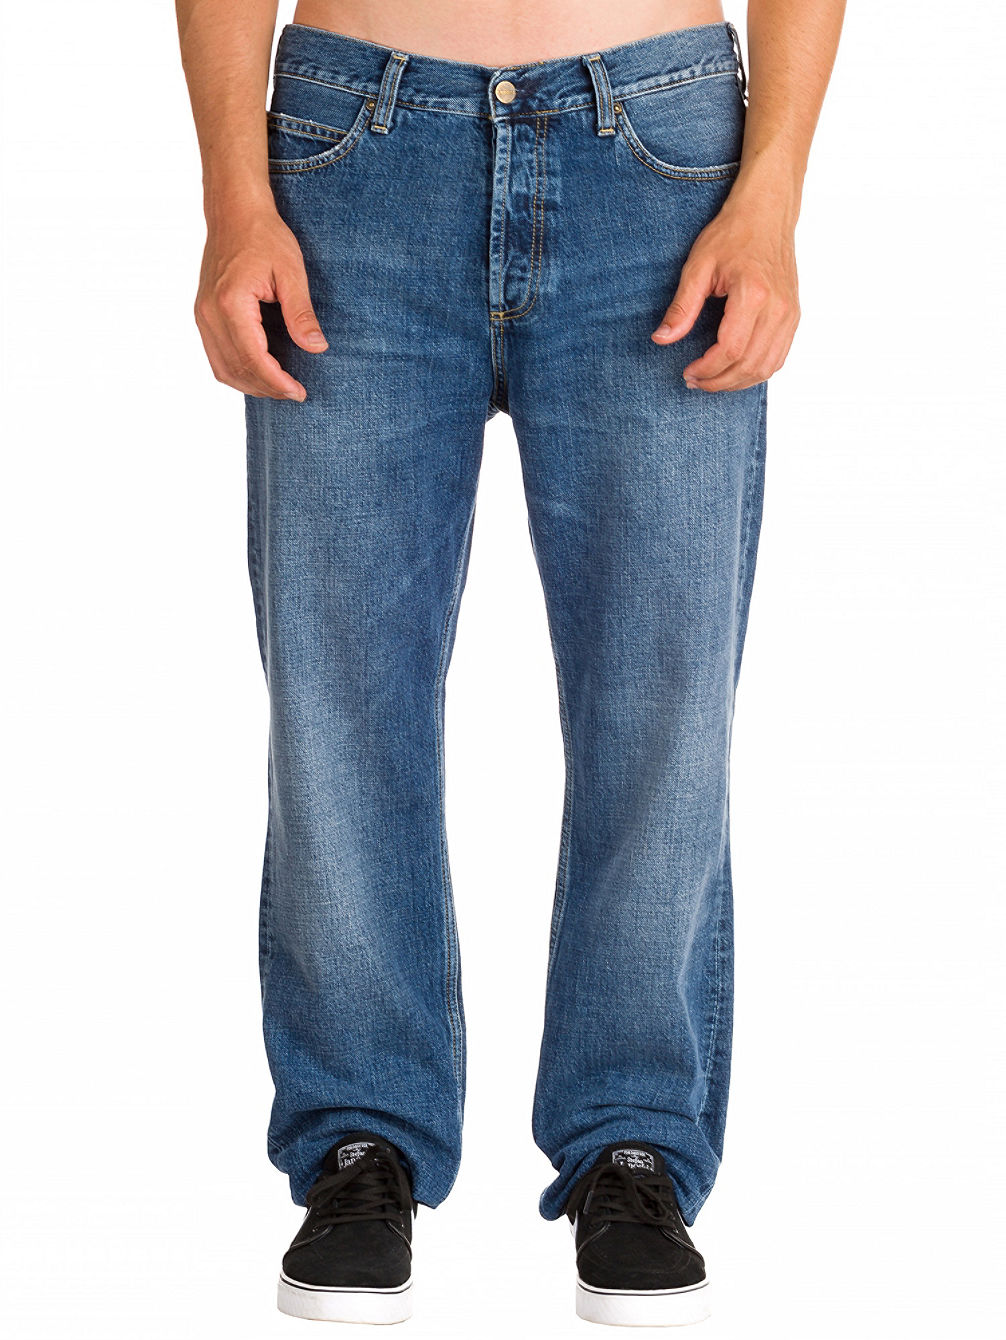 Marlow Jeans